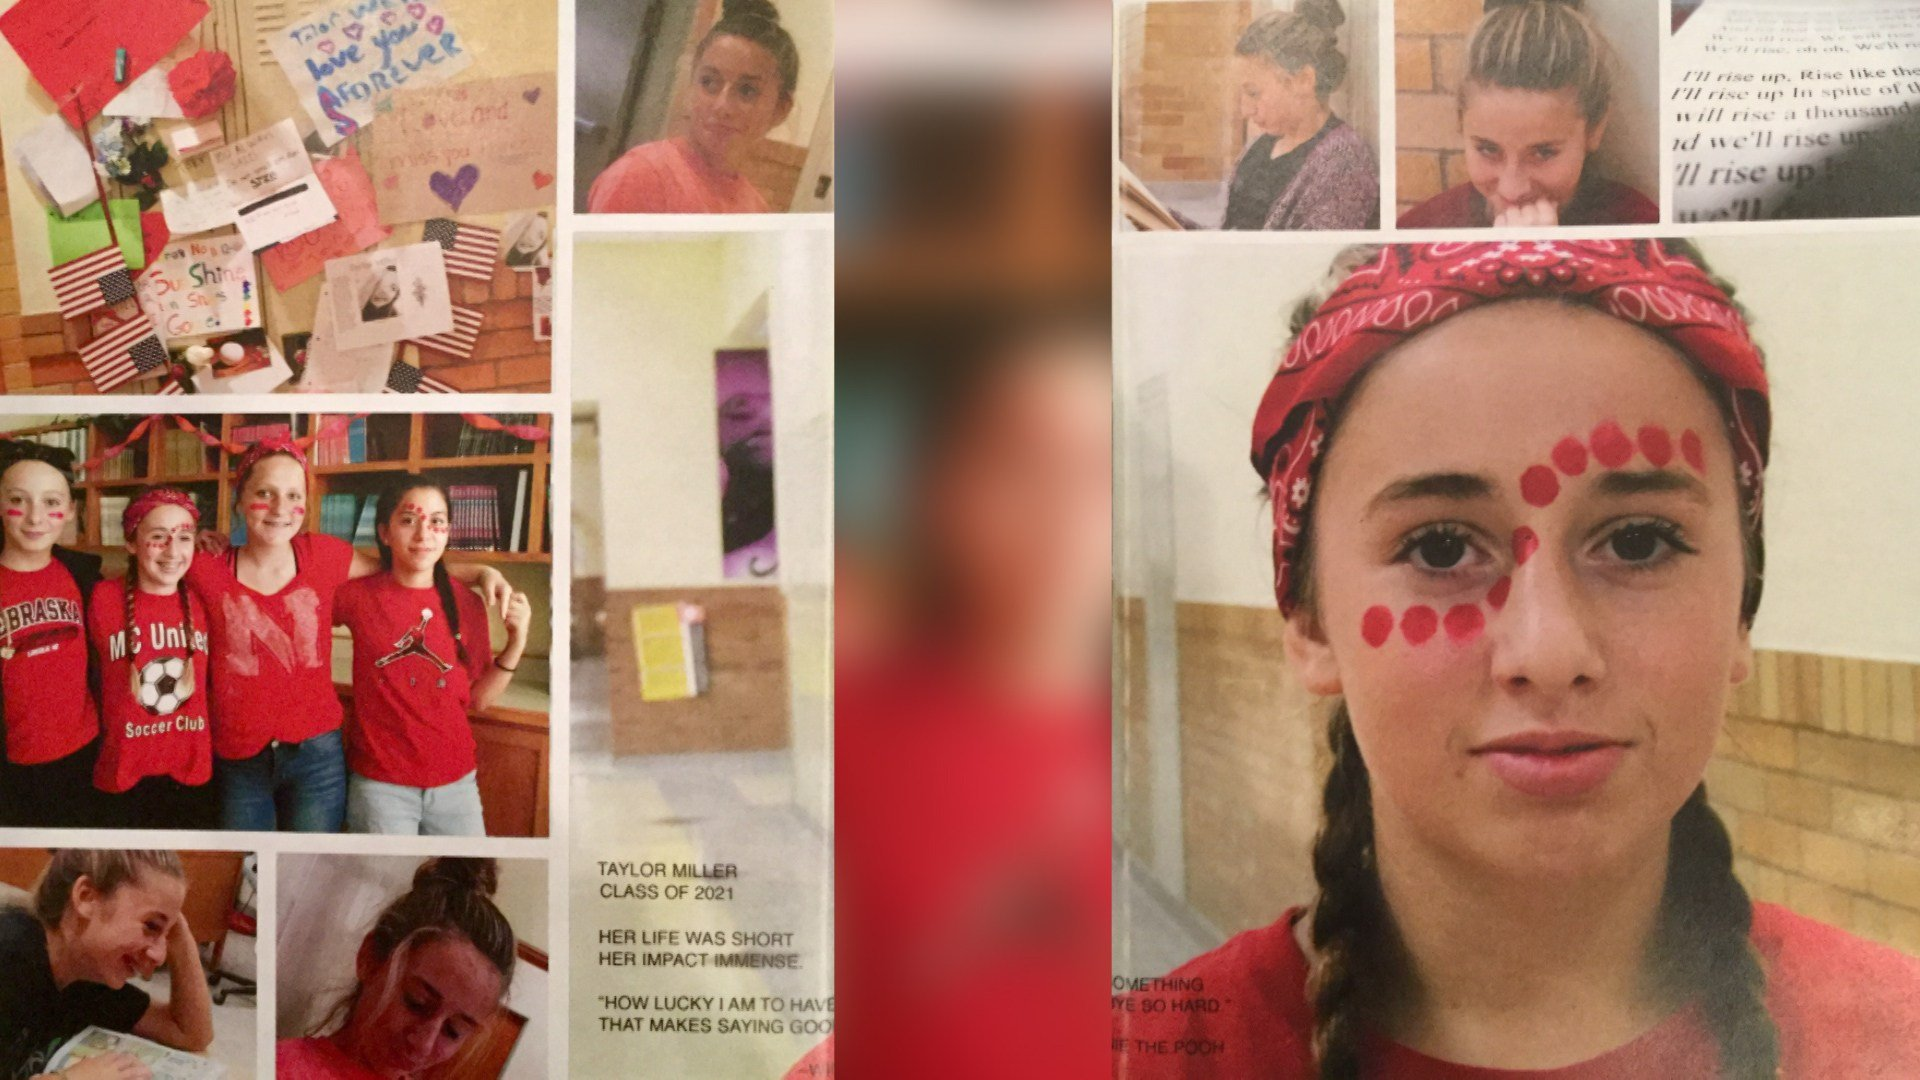 Two pages memorializing late 8th grader Taylor Miller cause Irving Middle School yearbooks to be recalled for breaking district guidelines.